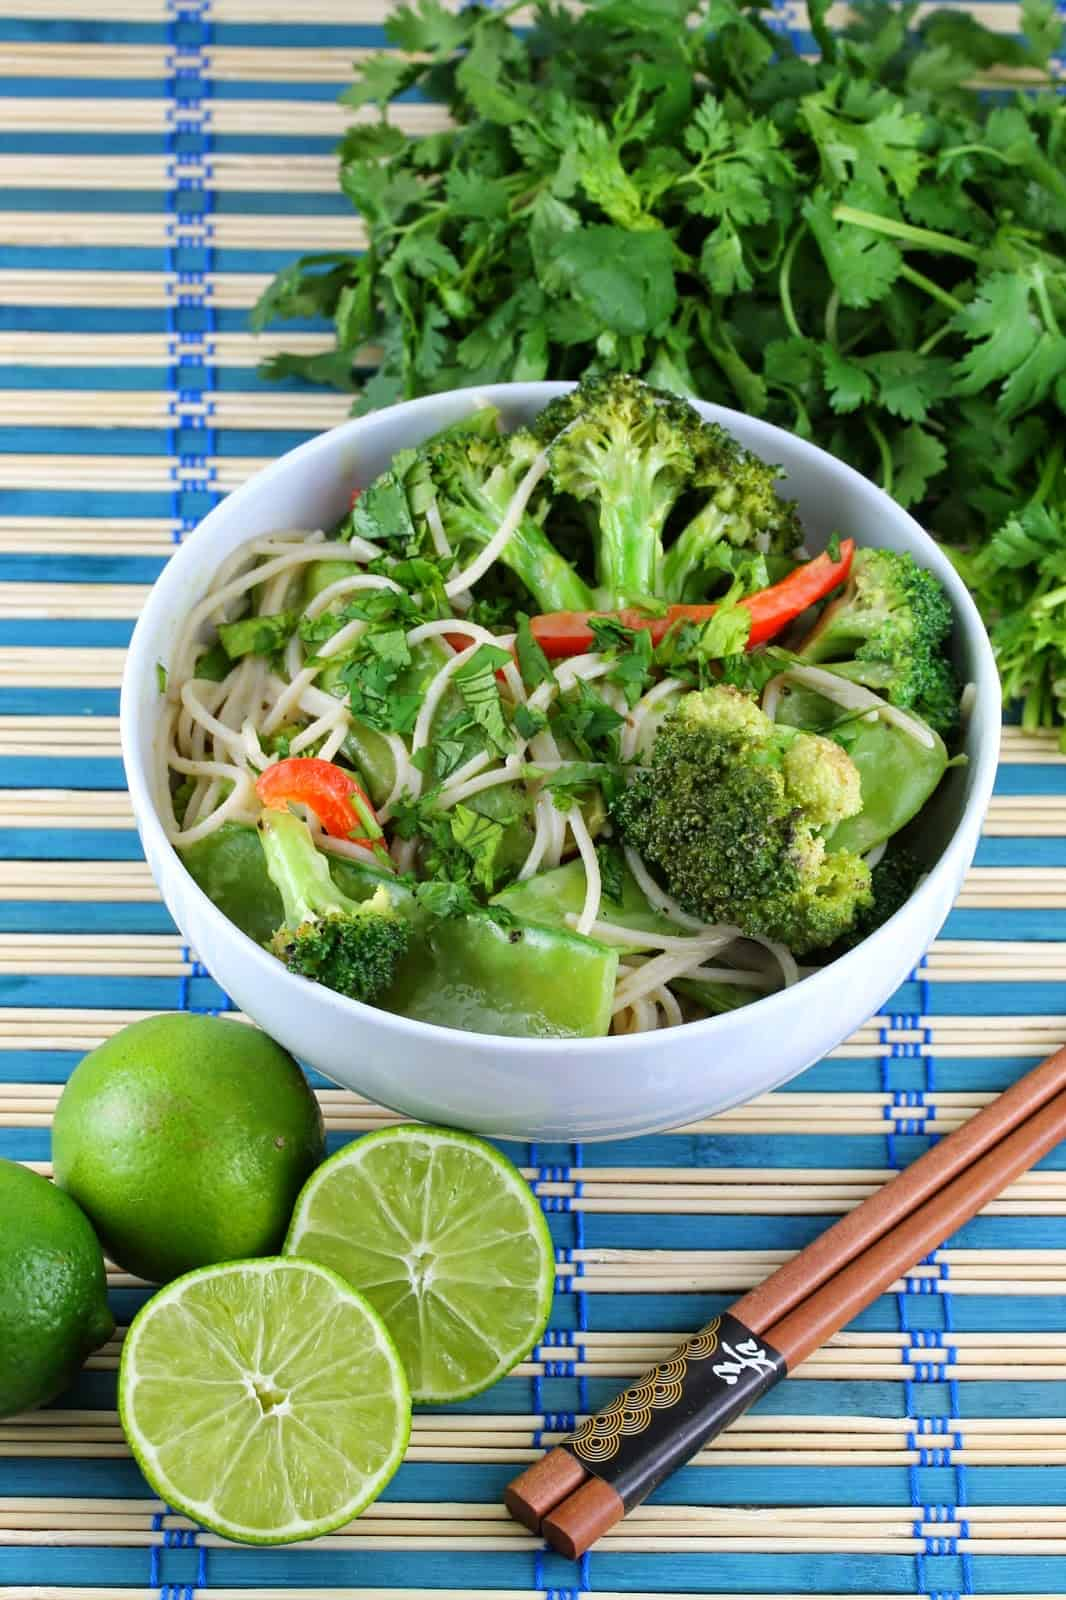 Thai green curry coconut stir fry in white bowl with chopsticks to the side